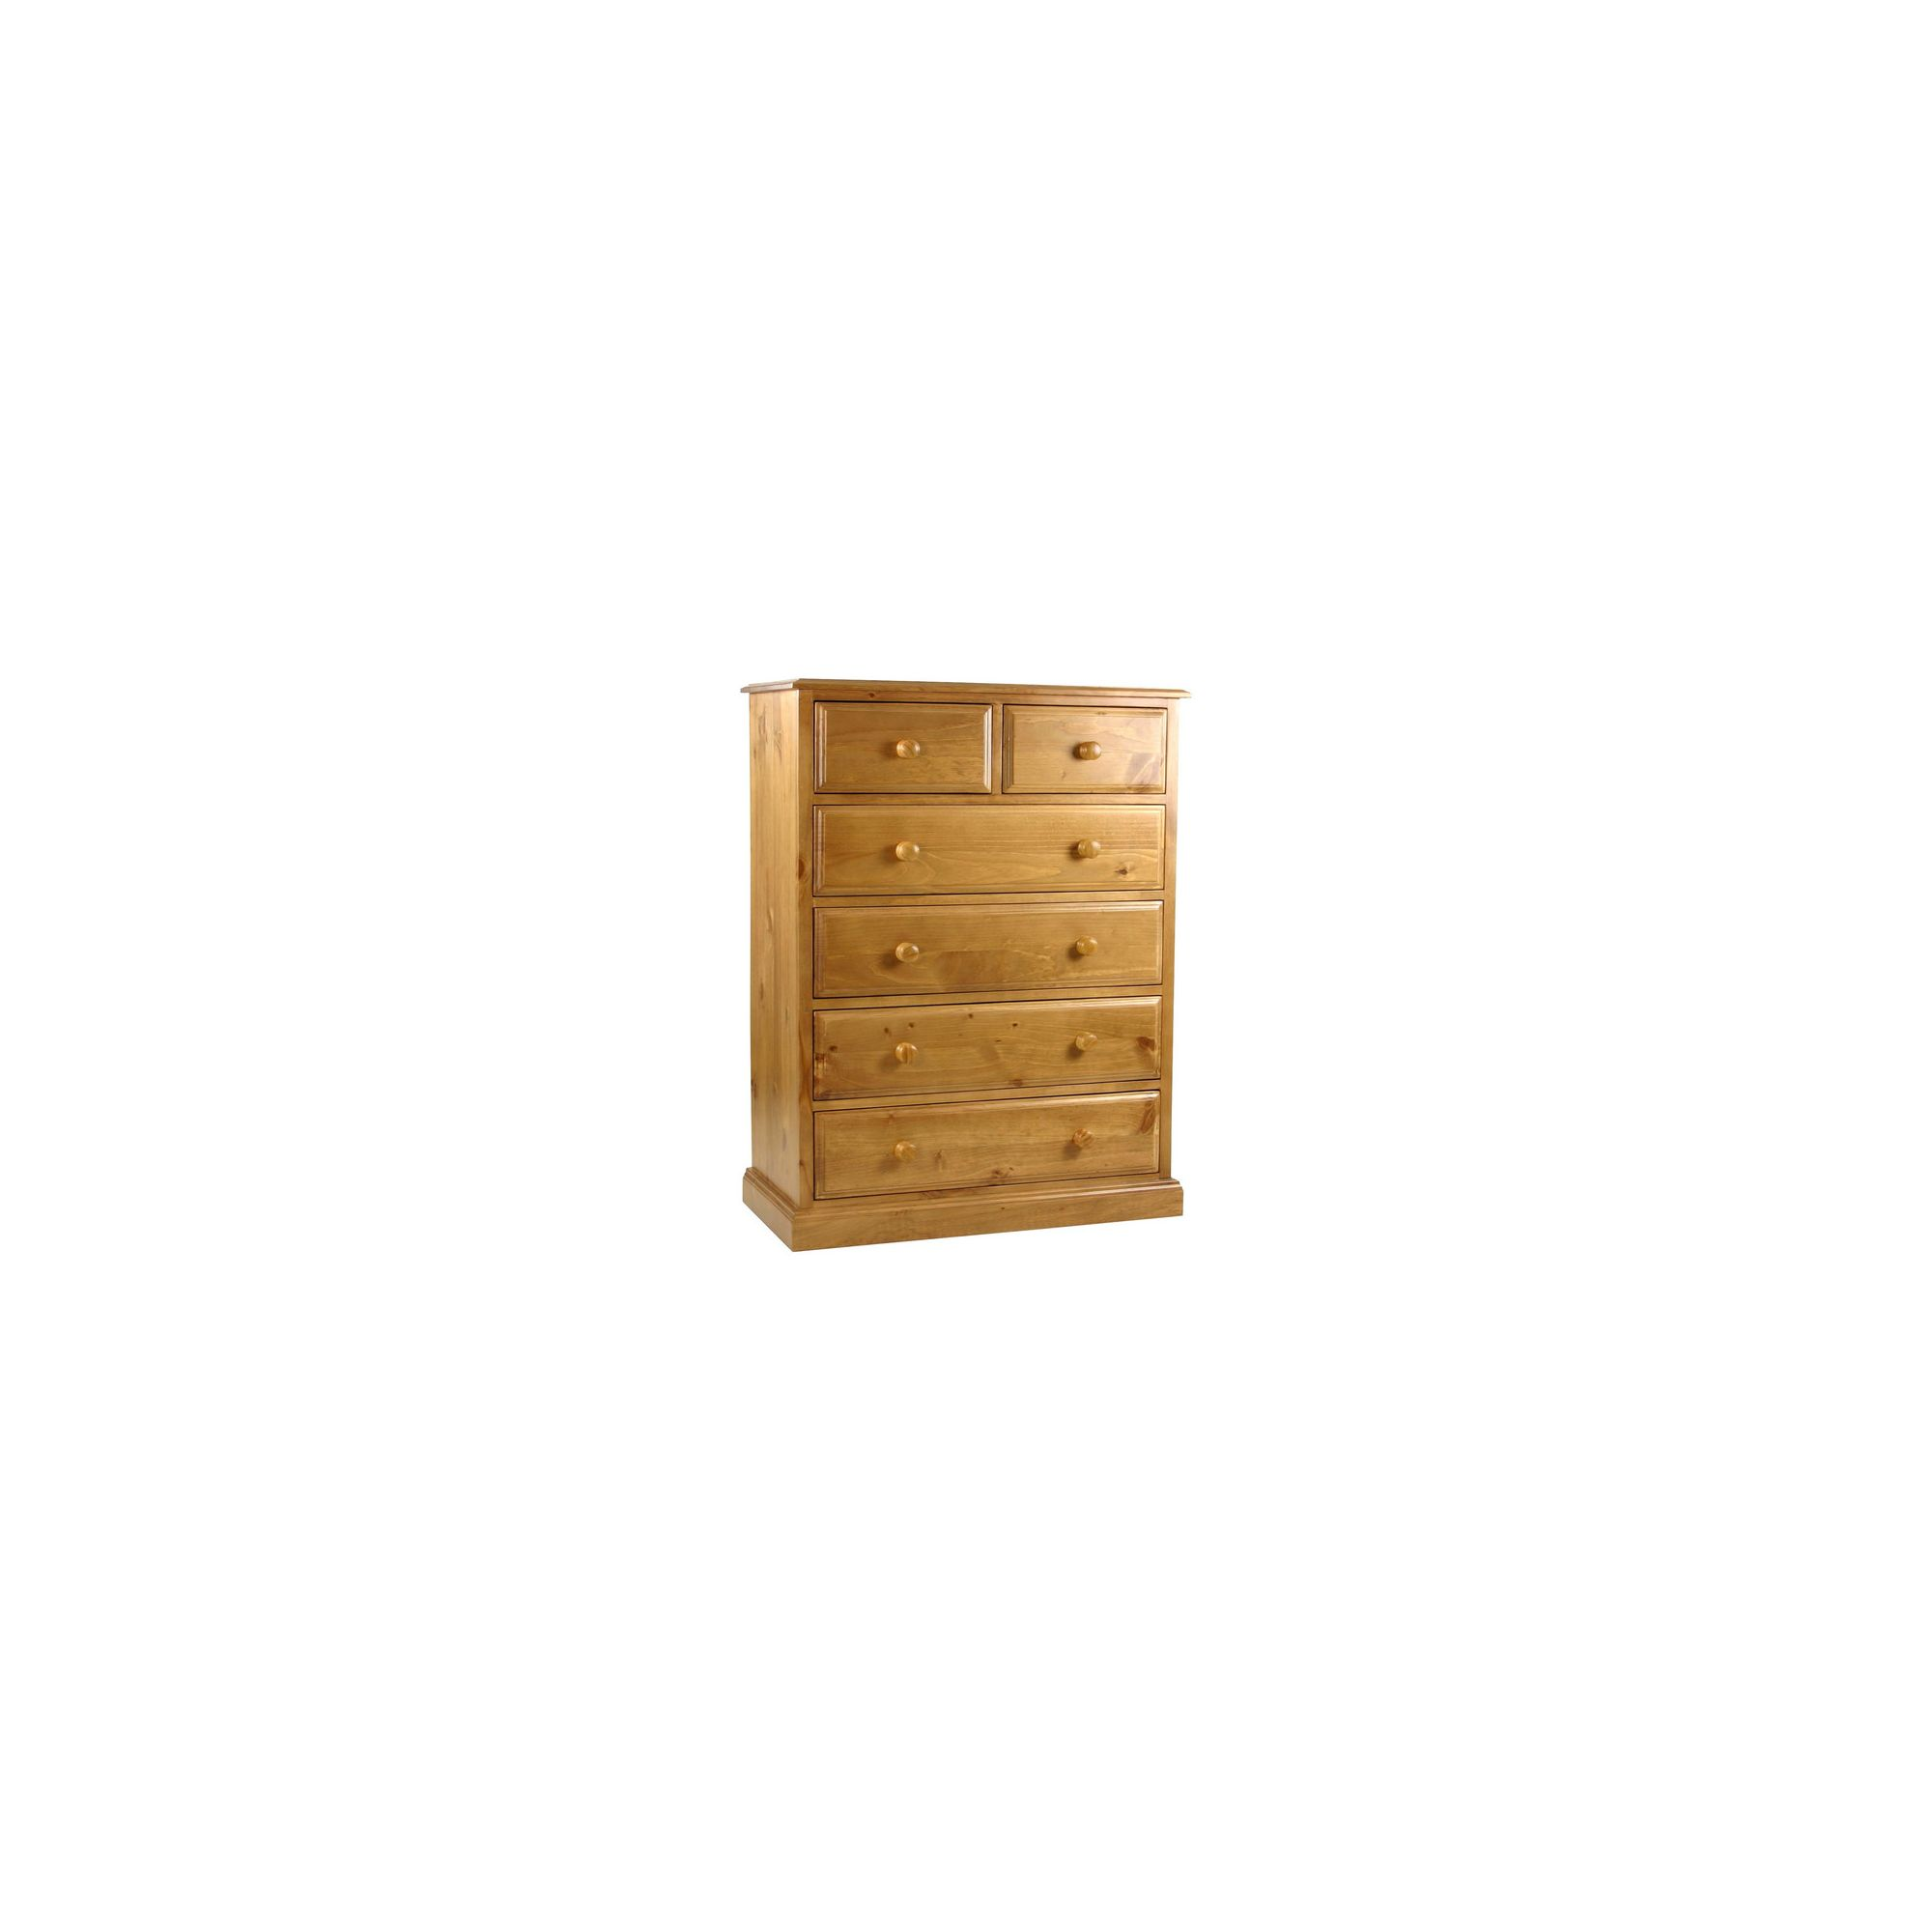 Kelburn Furniture Pine 2 Over 4 Drawer Large Chest in Antique Wax Lacquer at Tesco Direct